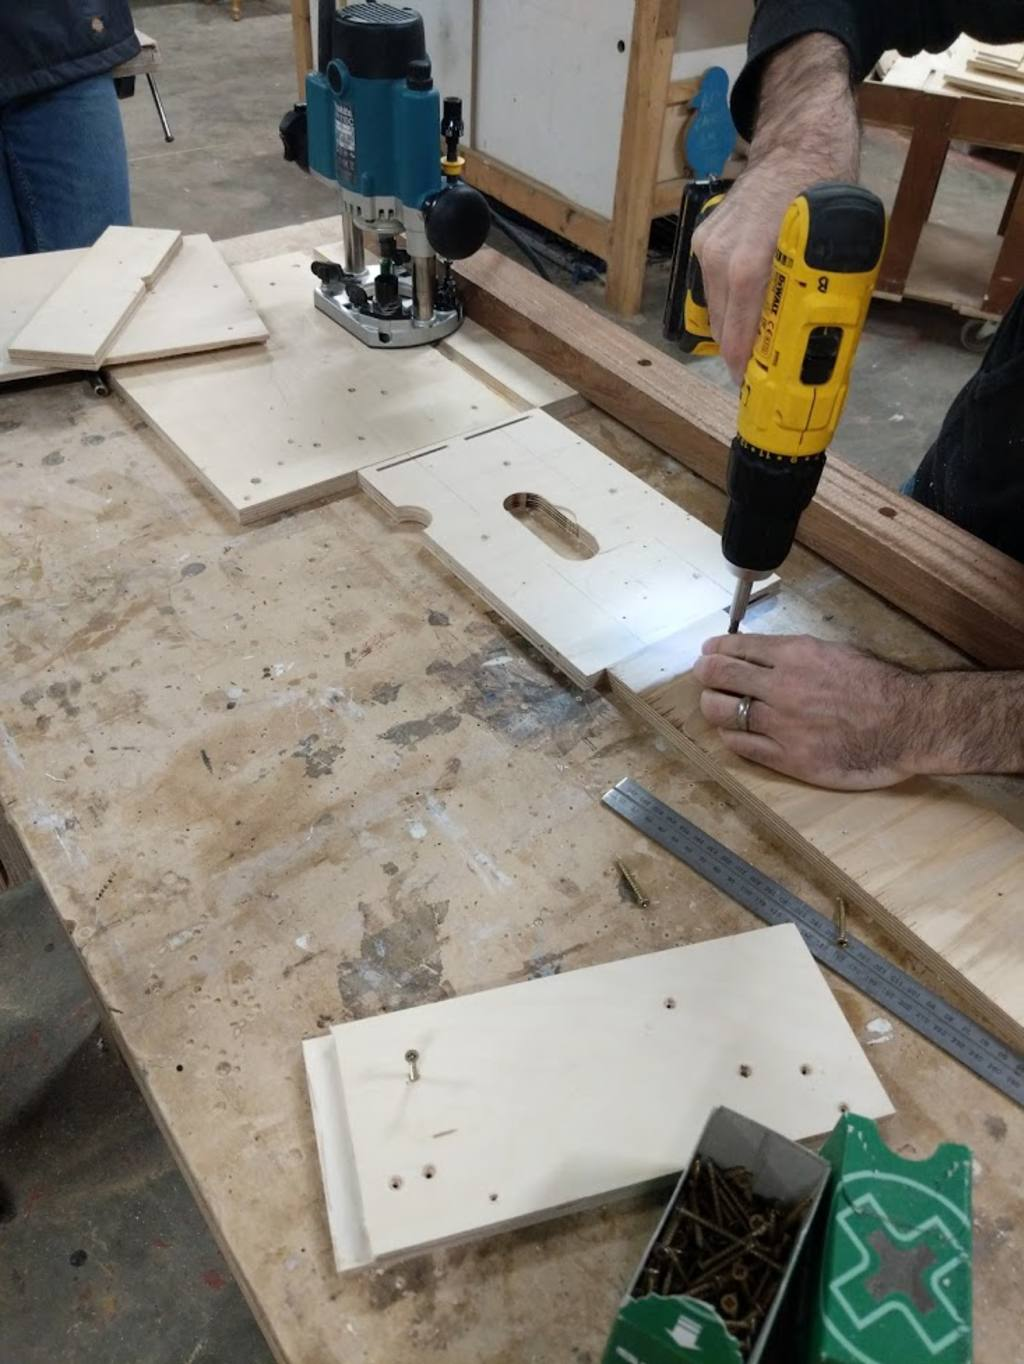 Routing with a router